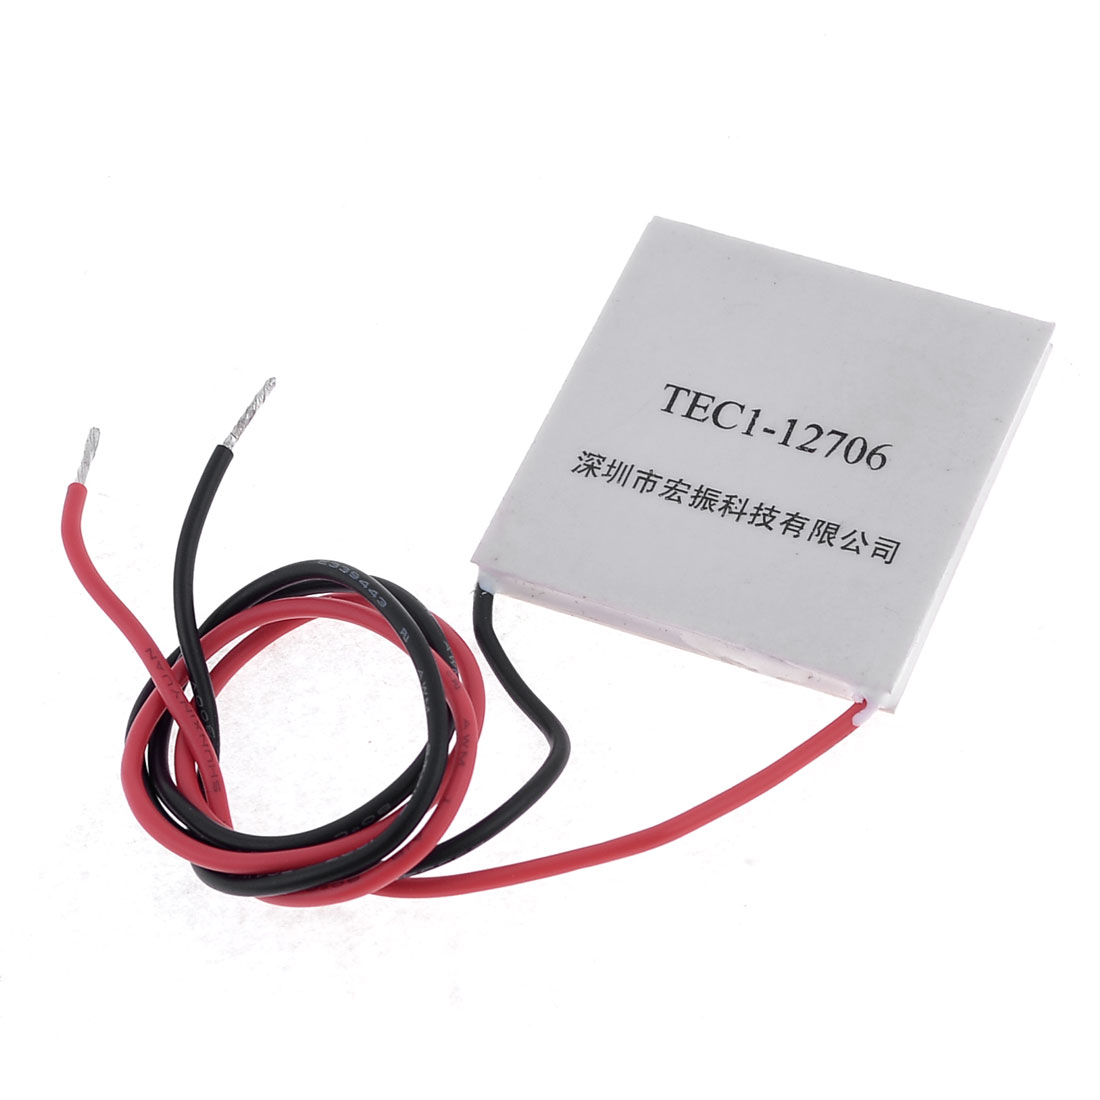 DC 15V 6A TEC1-12706 Semiconductor Thermoelectric Cooler Peltier Tablet